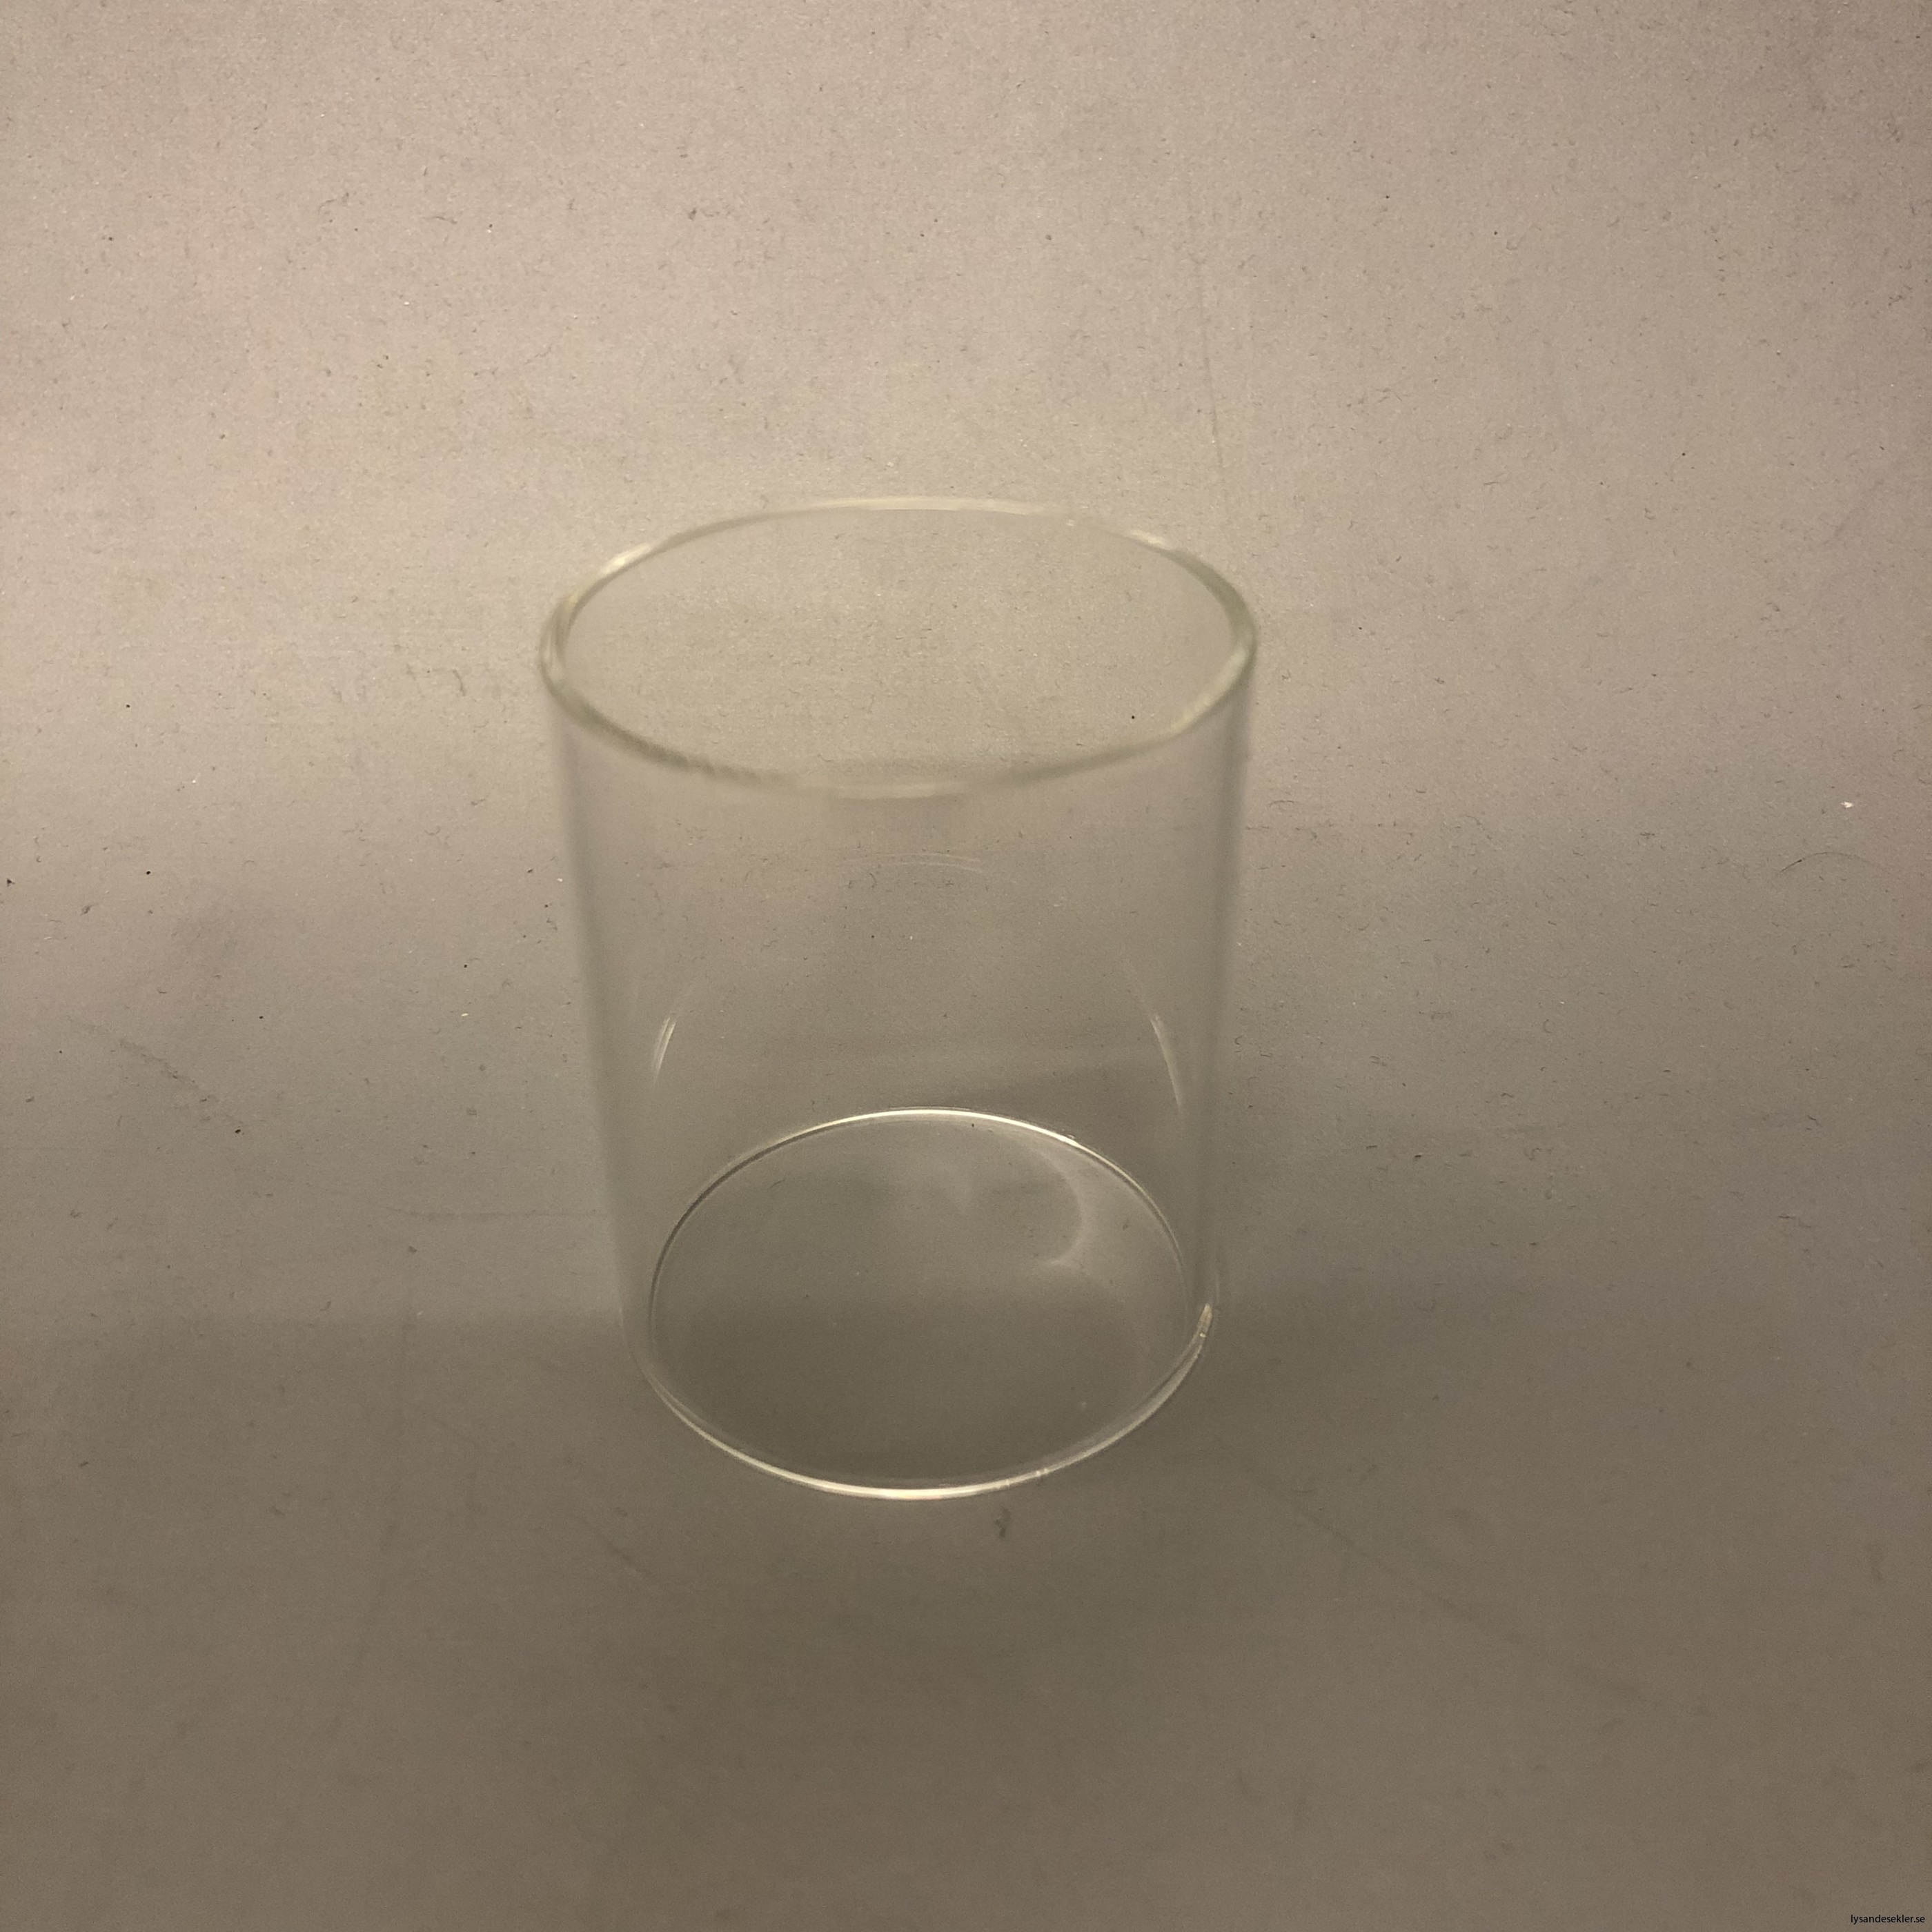 cylinderglas 55 mm 46 mm i diameter1